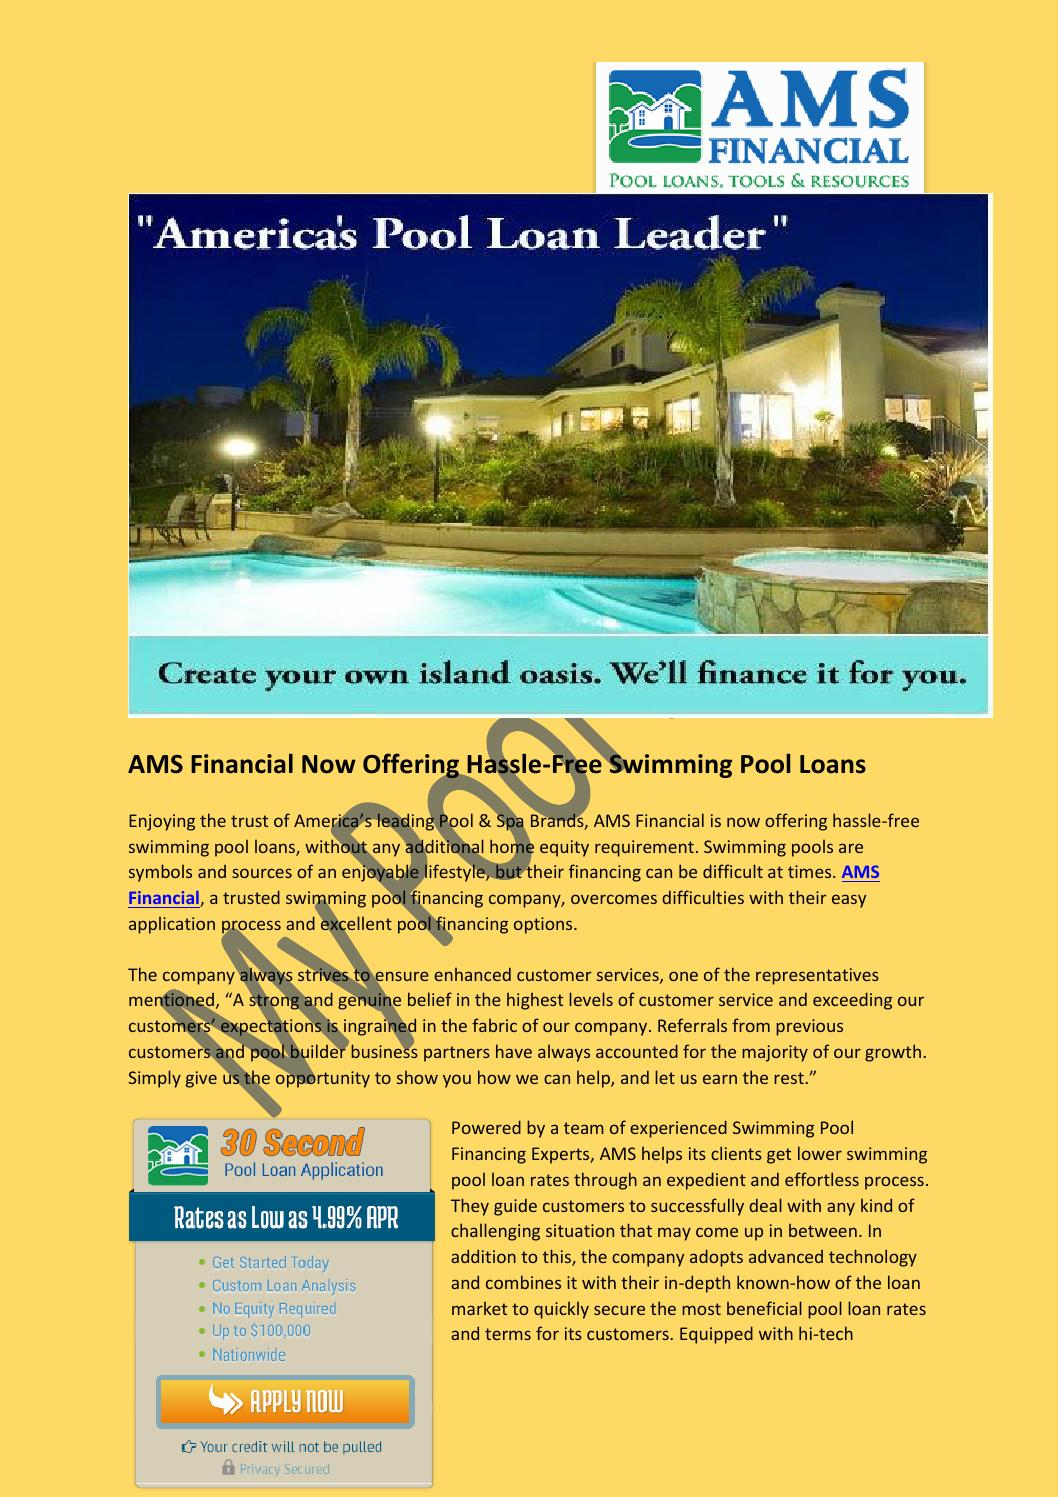 Ams financial now offering hassle free swimming pool loans for Swimming pool financing